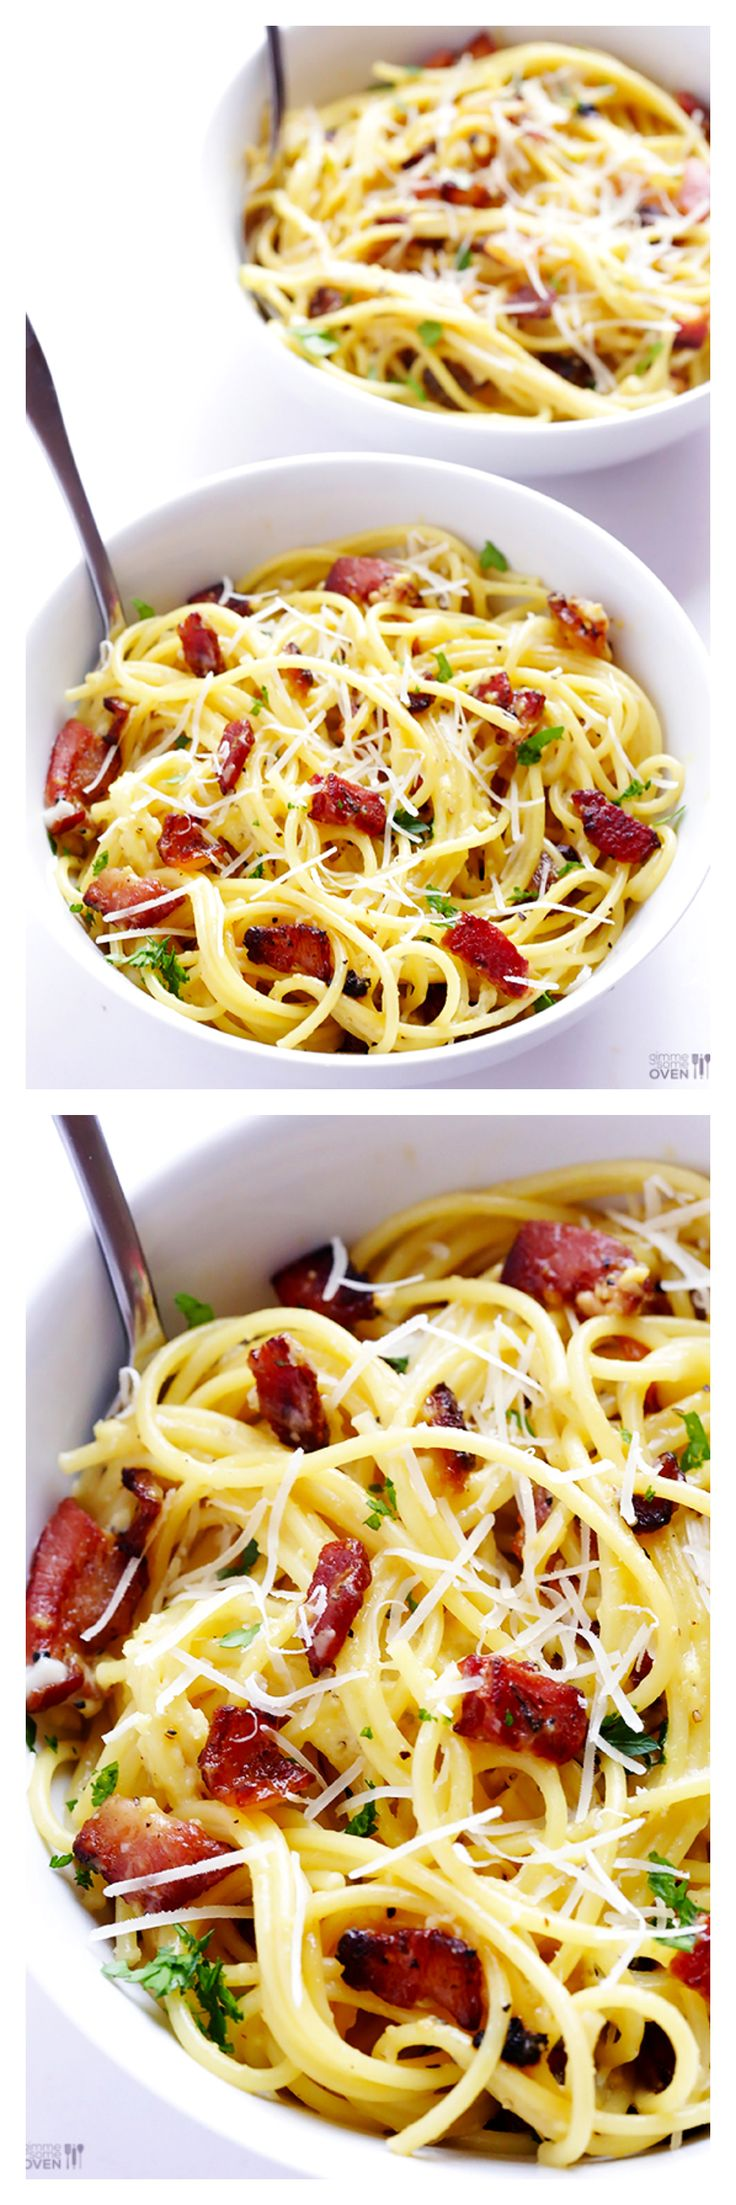 Spaghetti Carbonara -- one of my all-time FAVORITE pastas | gimmesomeoven.com #pasta #bacon #recipe